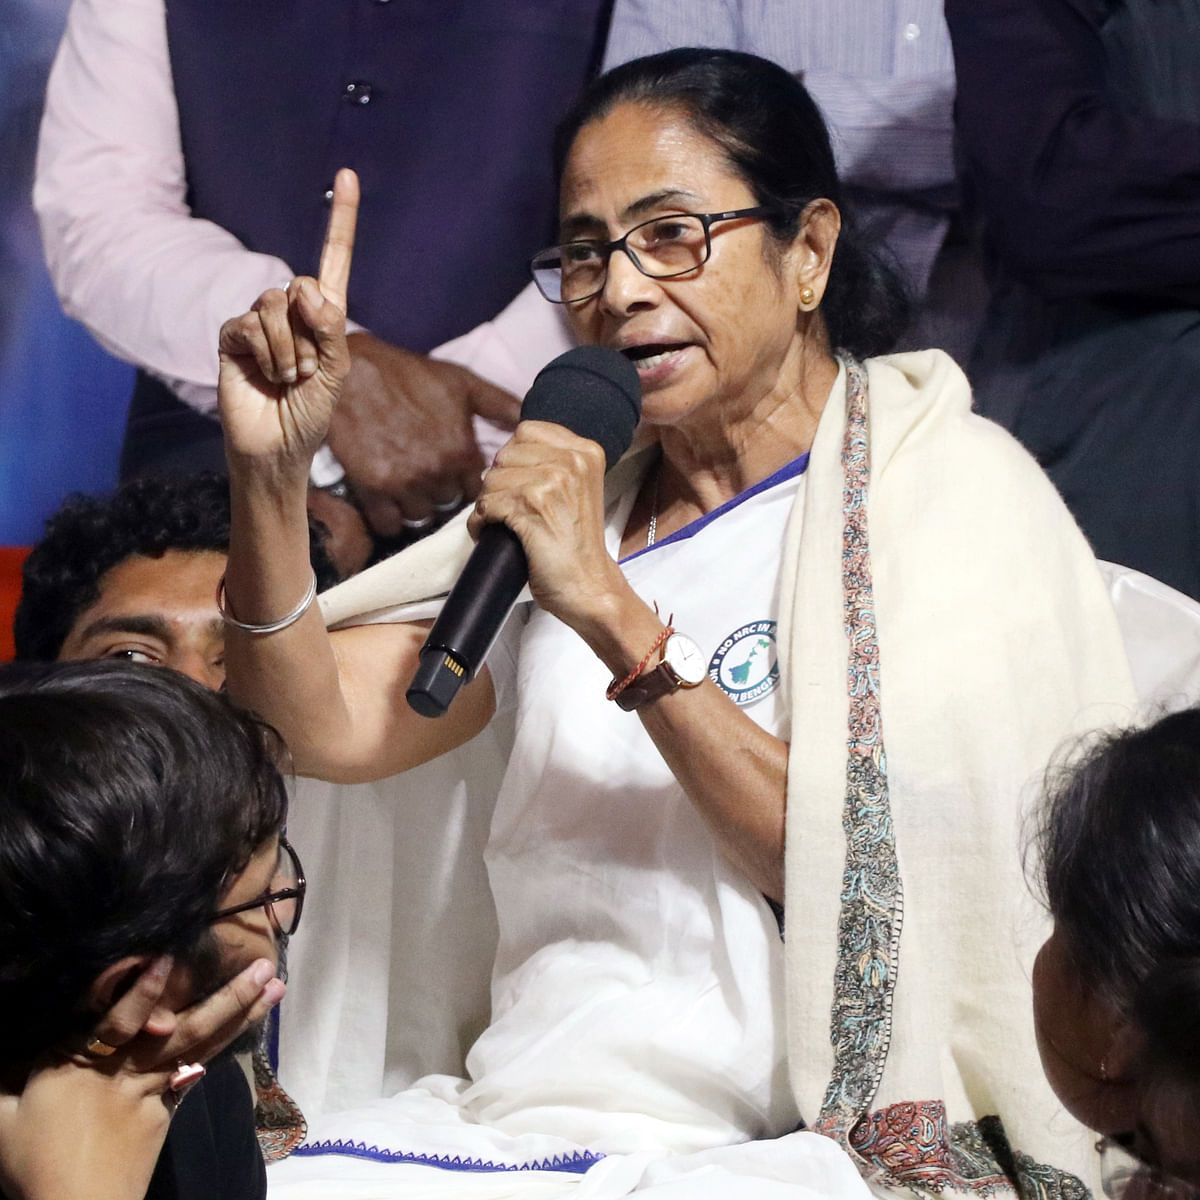 'He died due to pressure by Centre': Mamata Banerjee slams Modi-led government agencies for Tapas Paul's death